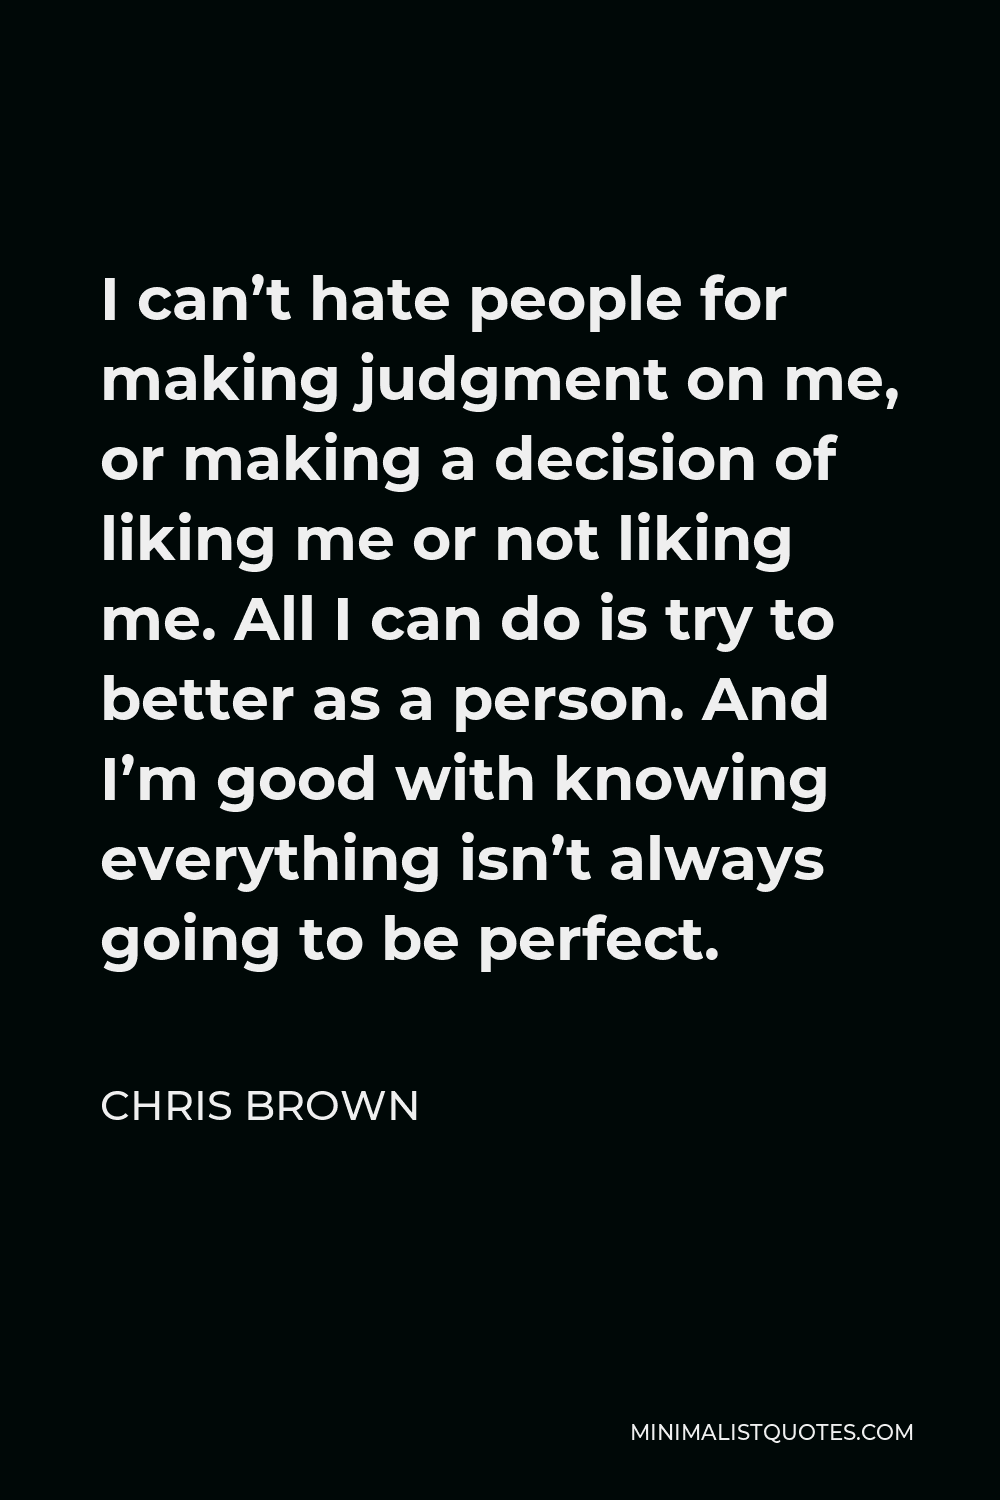 Chris Brown Quote - I can't hate people for making judgment on me, or making a decision of liking me or not liking me. All I can do is try to better as a person. And I'm good with knowing everything isn't always going to be perfect.